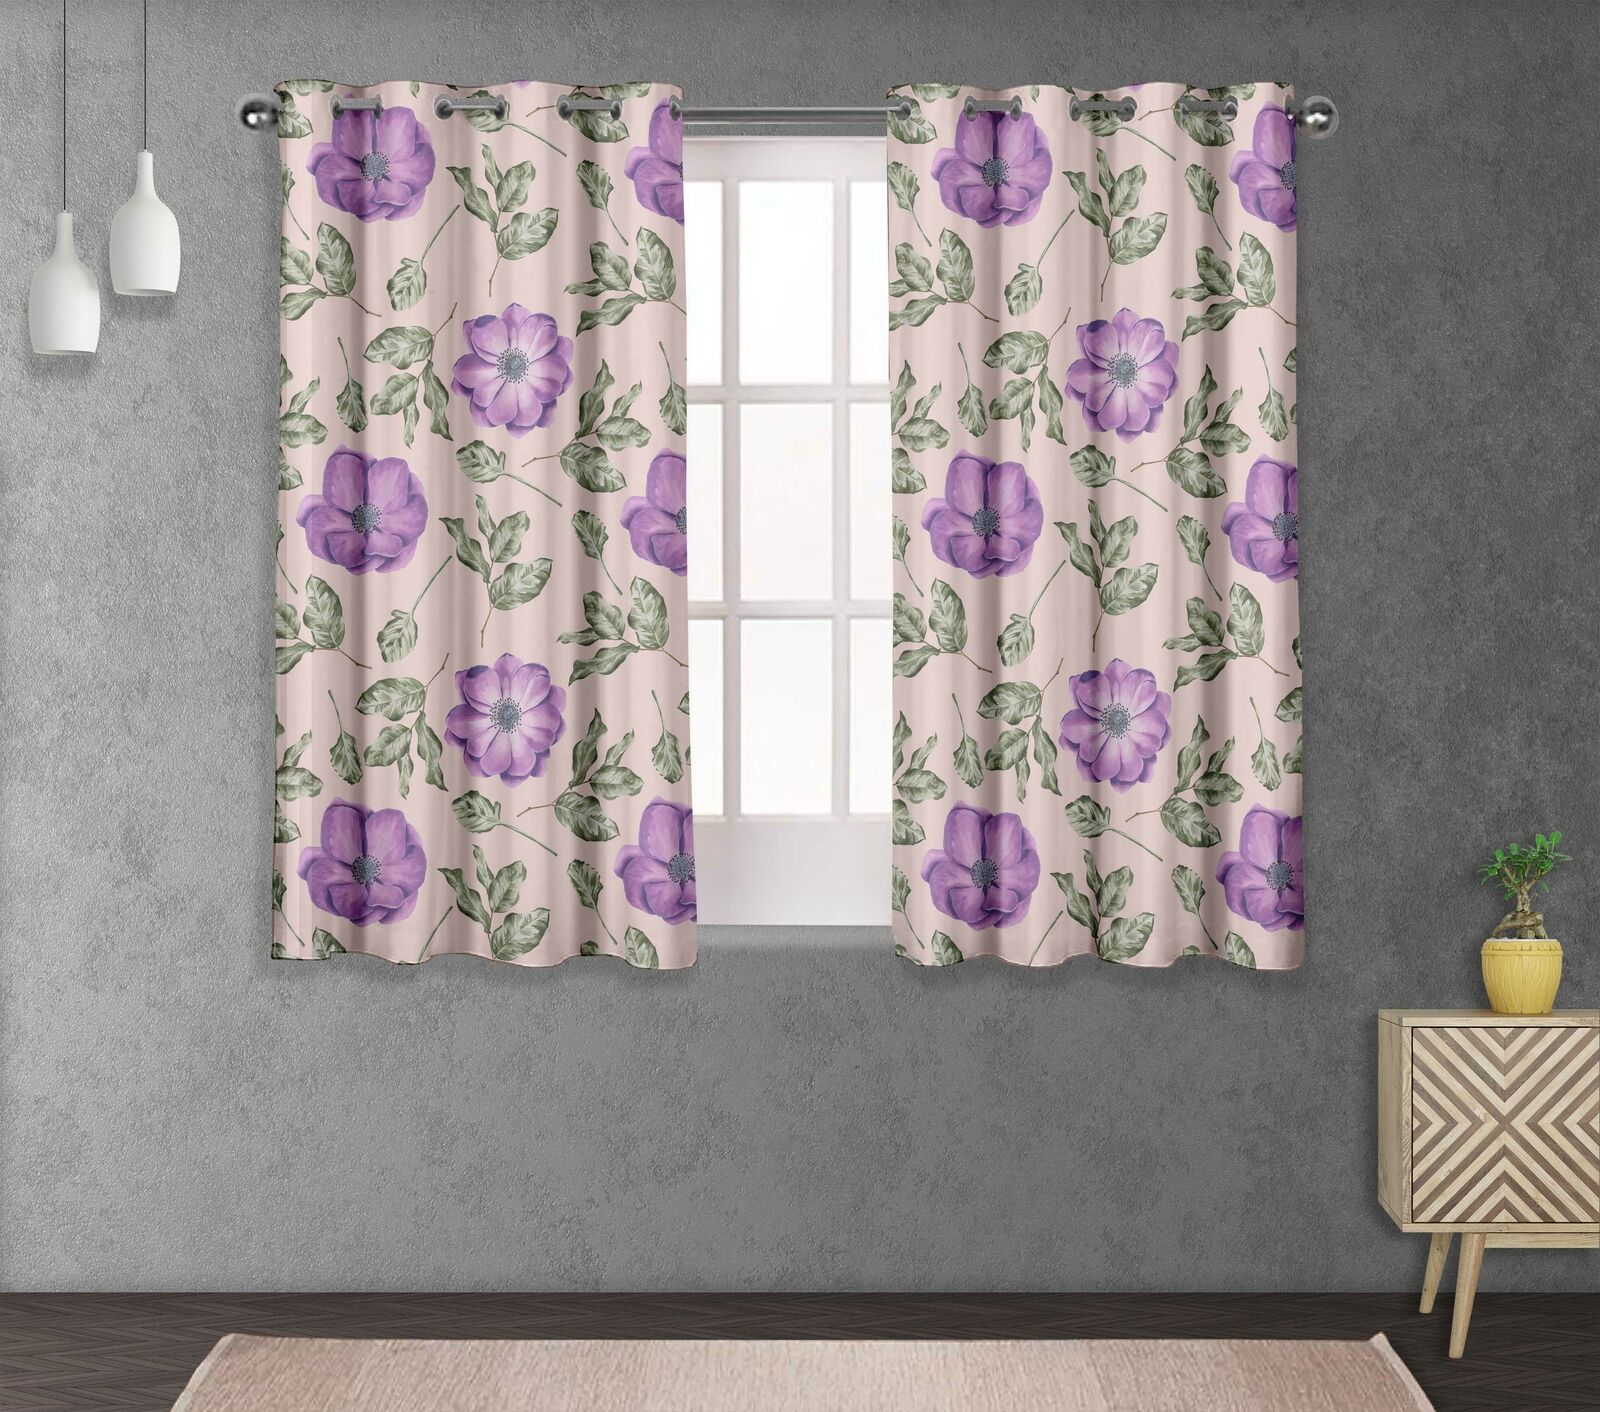 S4sassy Anemone & Camellia Living Room Eyelet Curtain Drapers -FL-861I